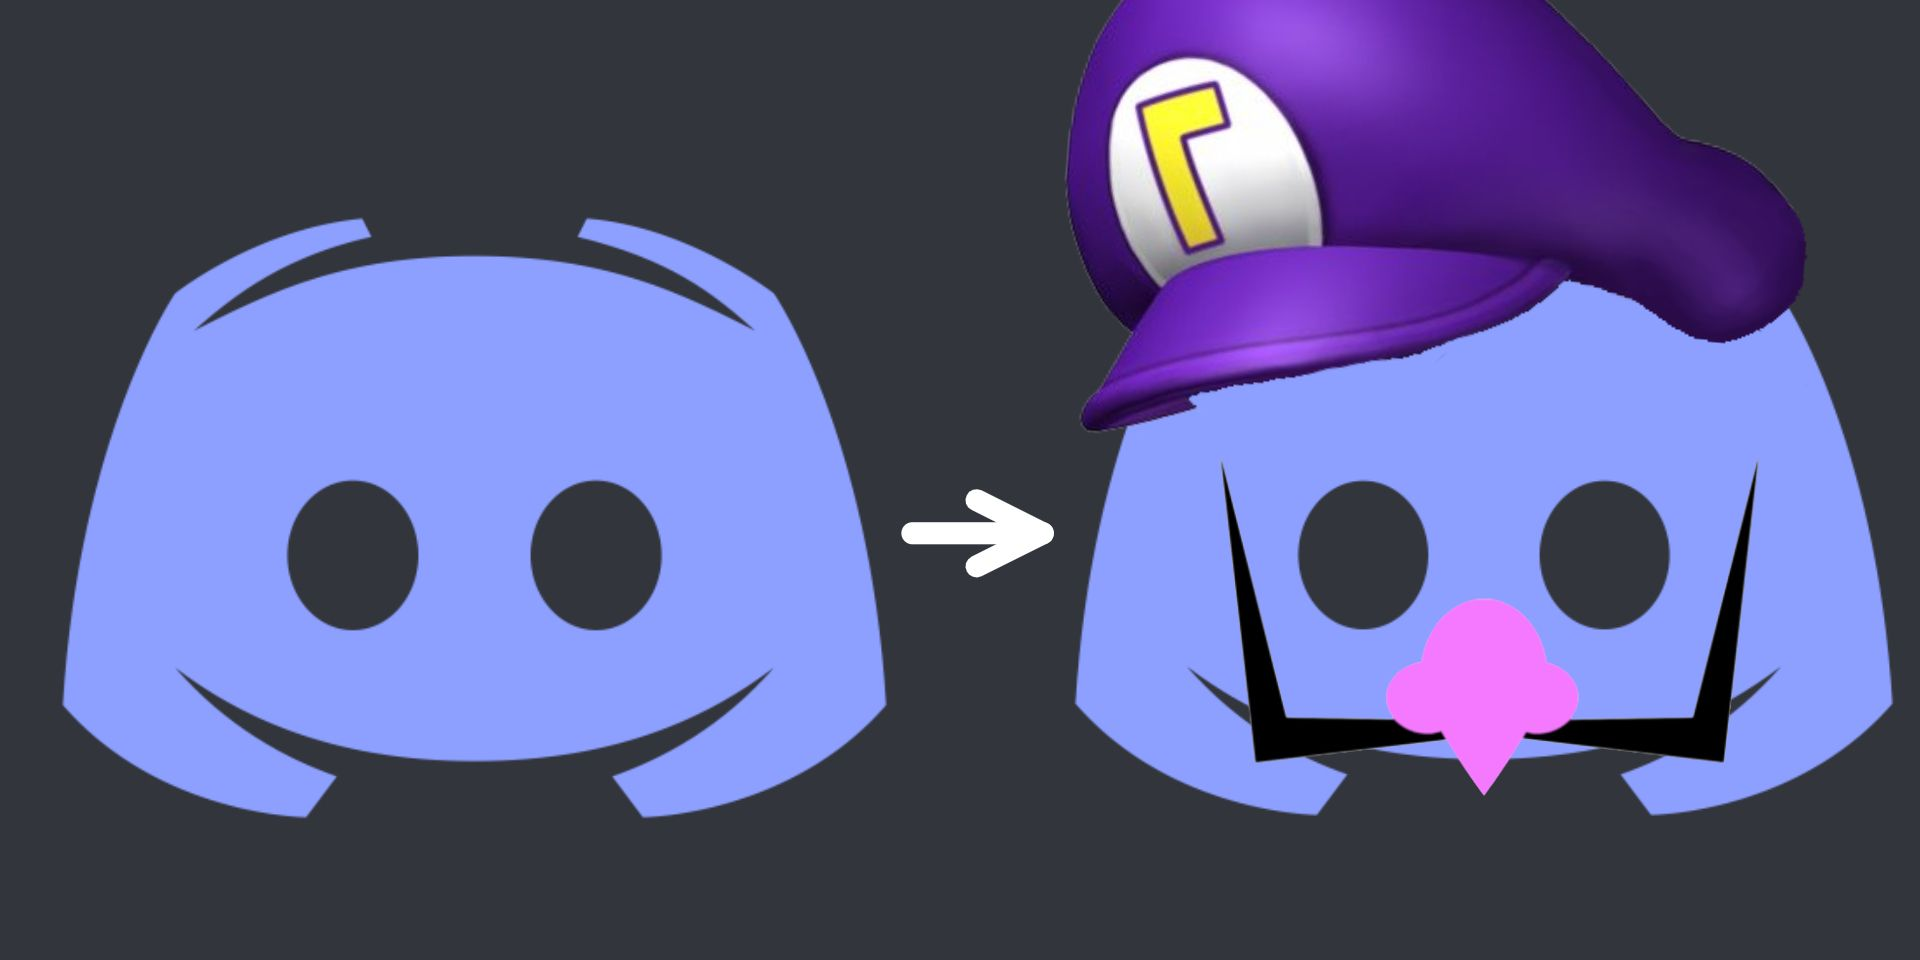 A picture of the default Discord logo, along with a version with a Waluigi hat and features.